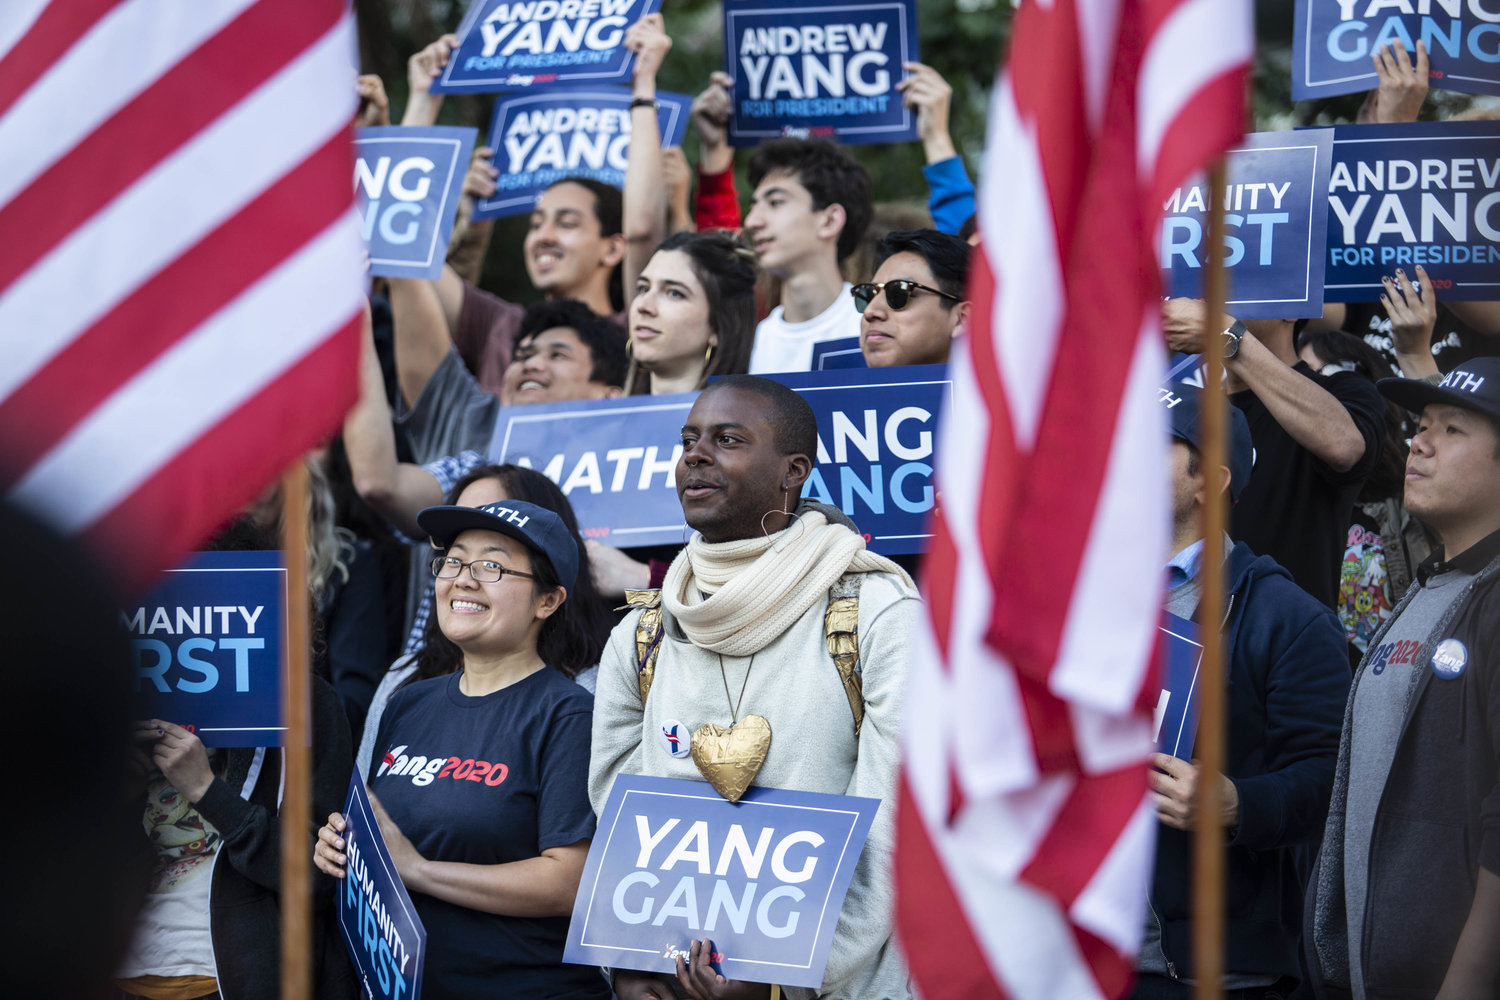 Yang supporters, the Humanity First Tour, Los Angeles, April 22, 2019